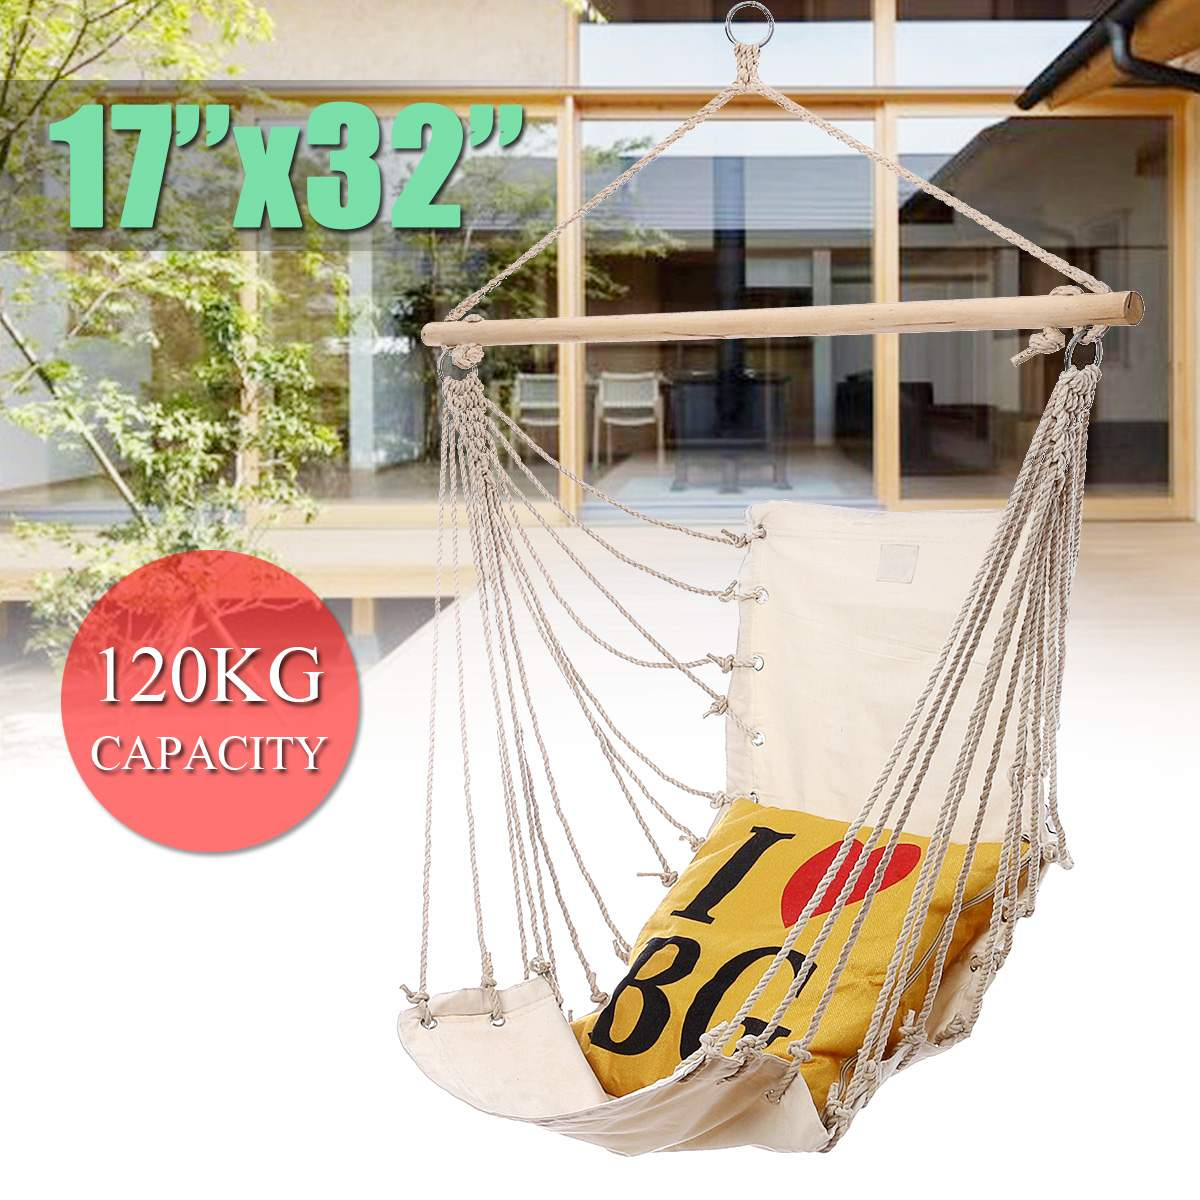 Outdoor Indoor Garden Hanging Hammock Chair For Child Kids Adult Swinging Nordic Style Dormitory Bedroom Hanging Chair